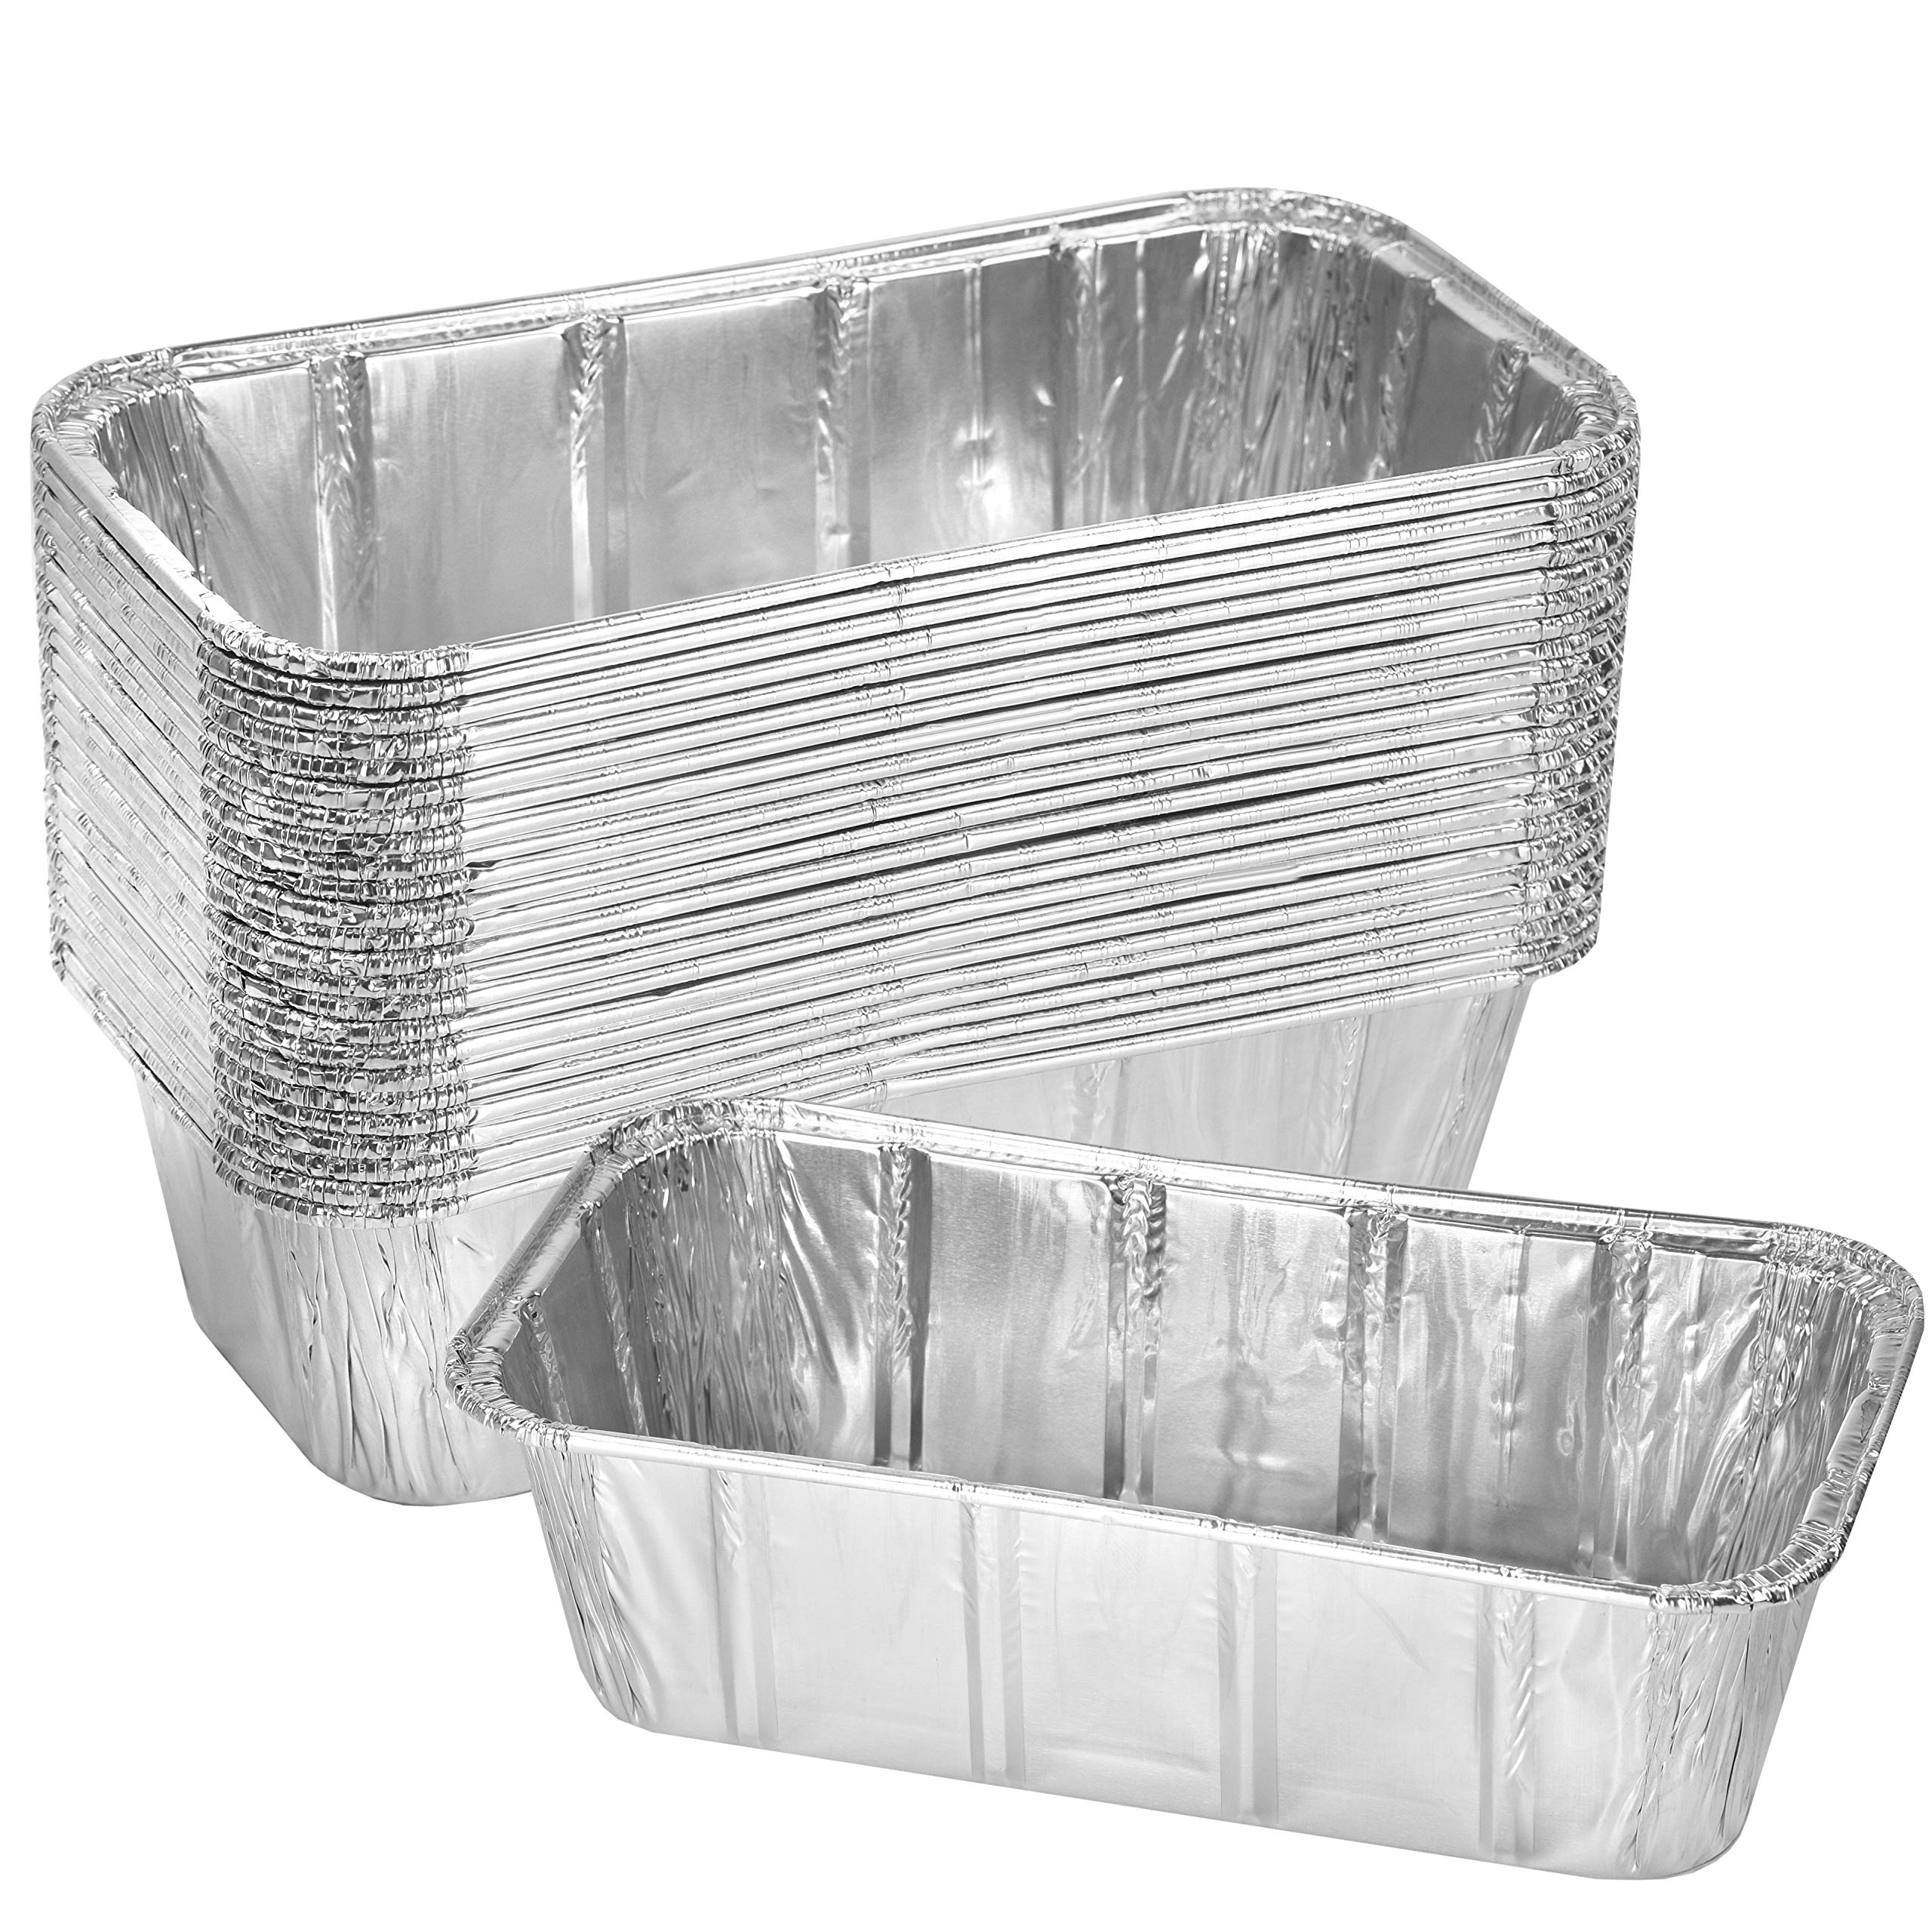 Thick Aluminum Loaf Pans (30 Pack, 8 x 4 Inches) | 2 Lb. Mini Baking Pans for Bread, Lasagna, Meatloaf, Cake | Heavy Duty Disposable Oven Bake Tin for Cooking & Food Storage by NYHI